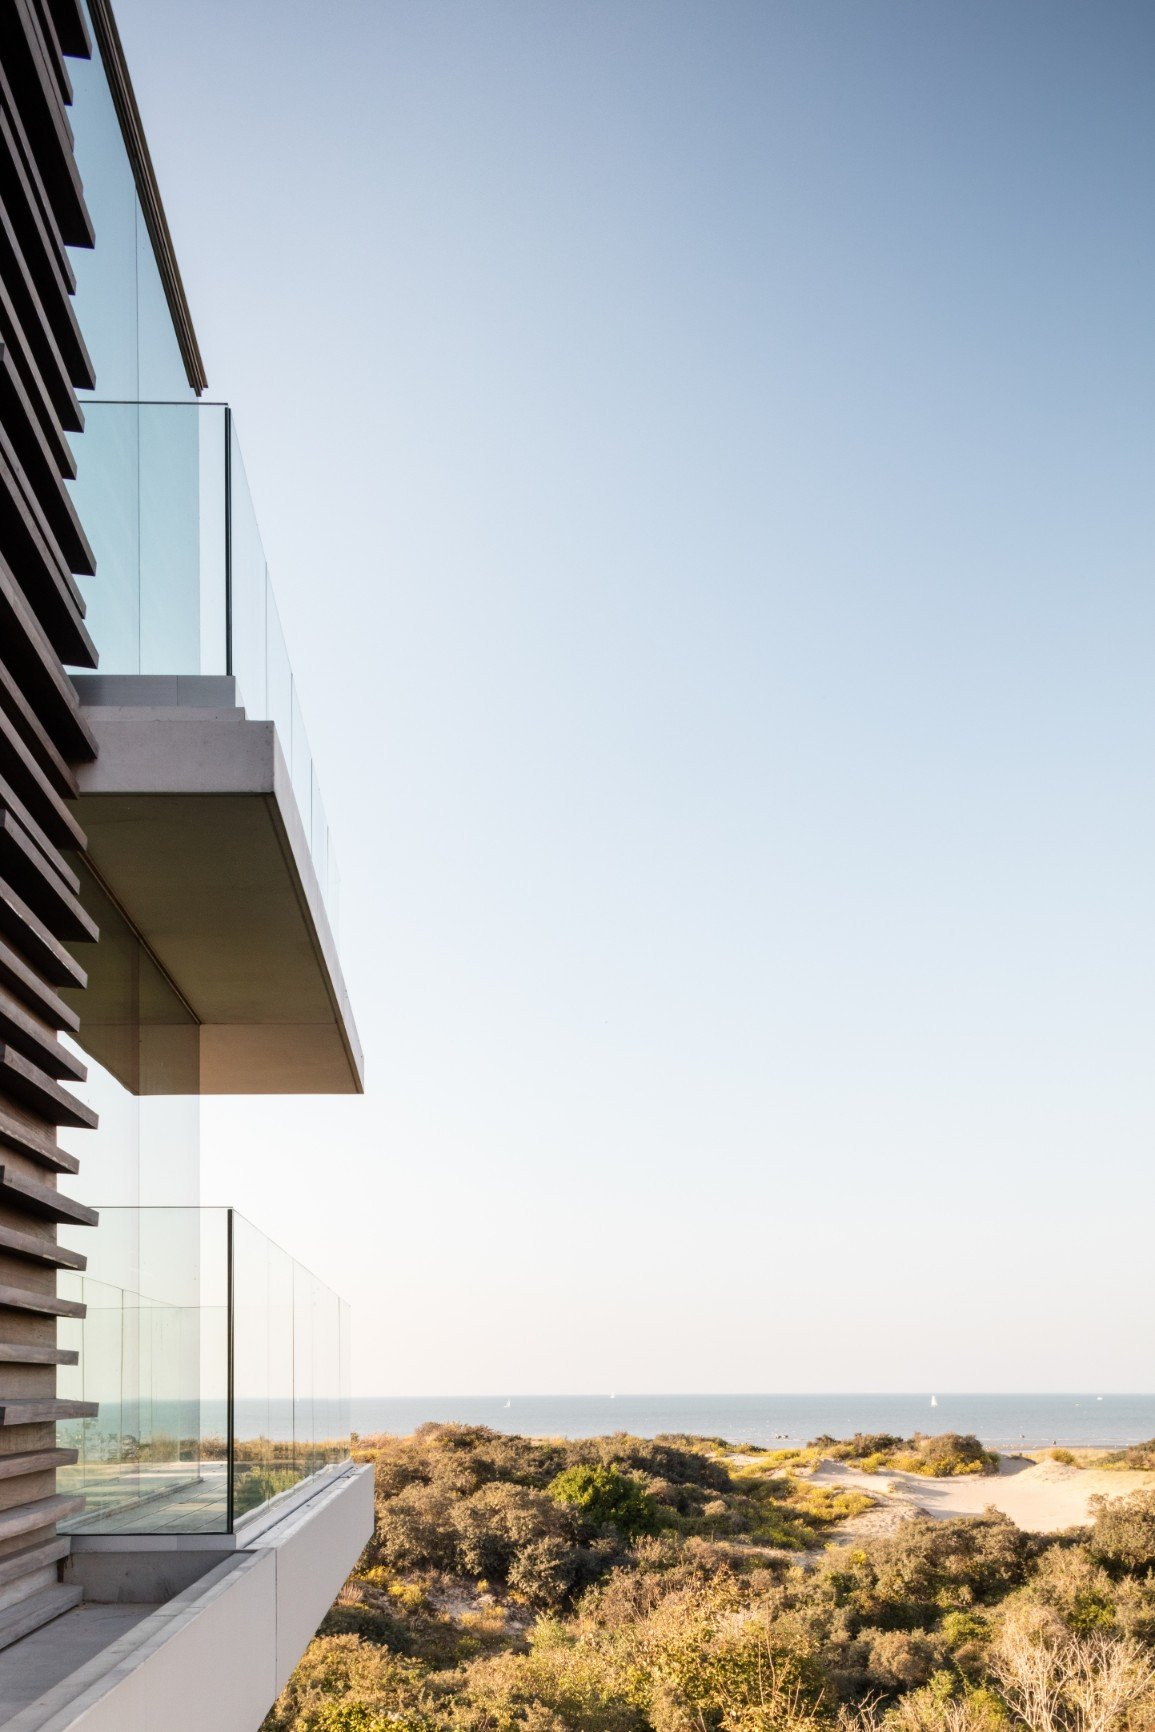 Rietveldprojects-Residence-ON-appartement-design-architectuur-kust-tvdv16